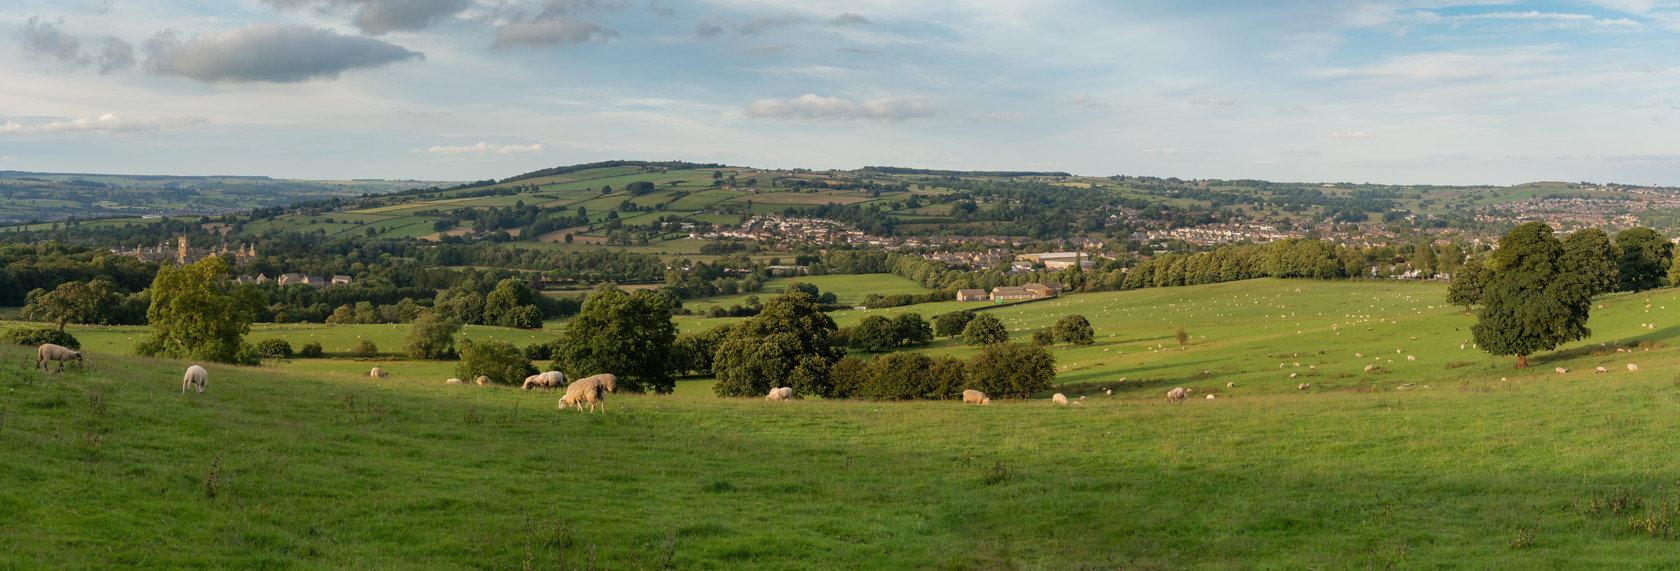 8pm, 16th july 2017, Aireborough (ref pa 75) 